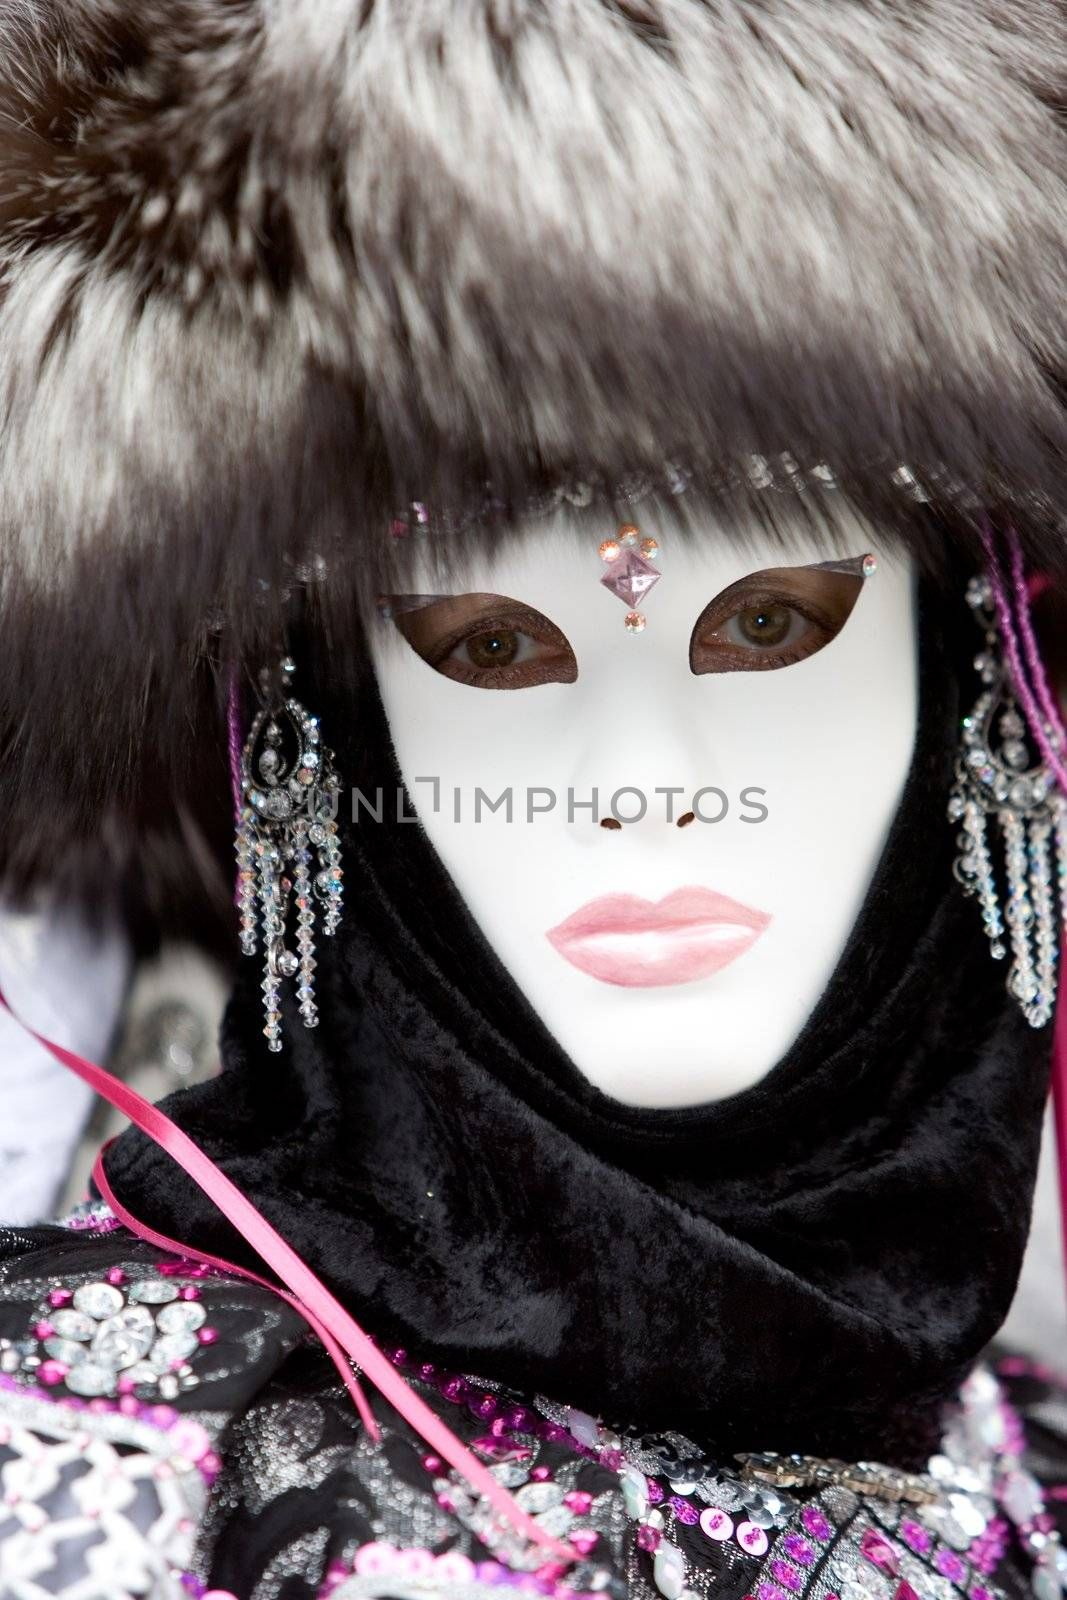 Lady at the Venice carnival wearing a fox hair hat, jewelery and a white mask